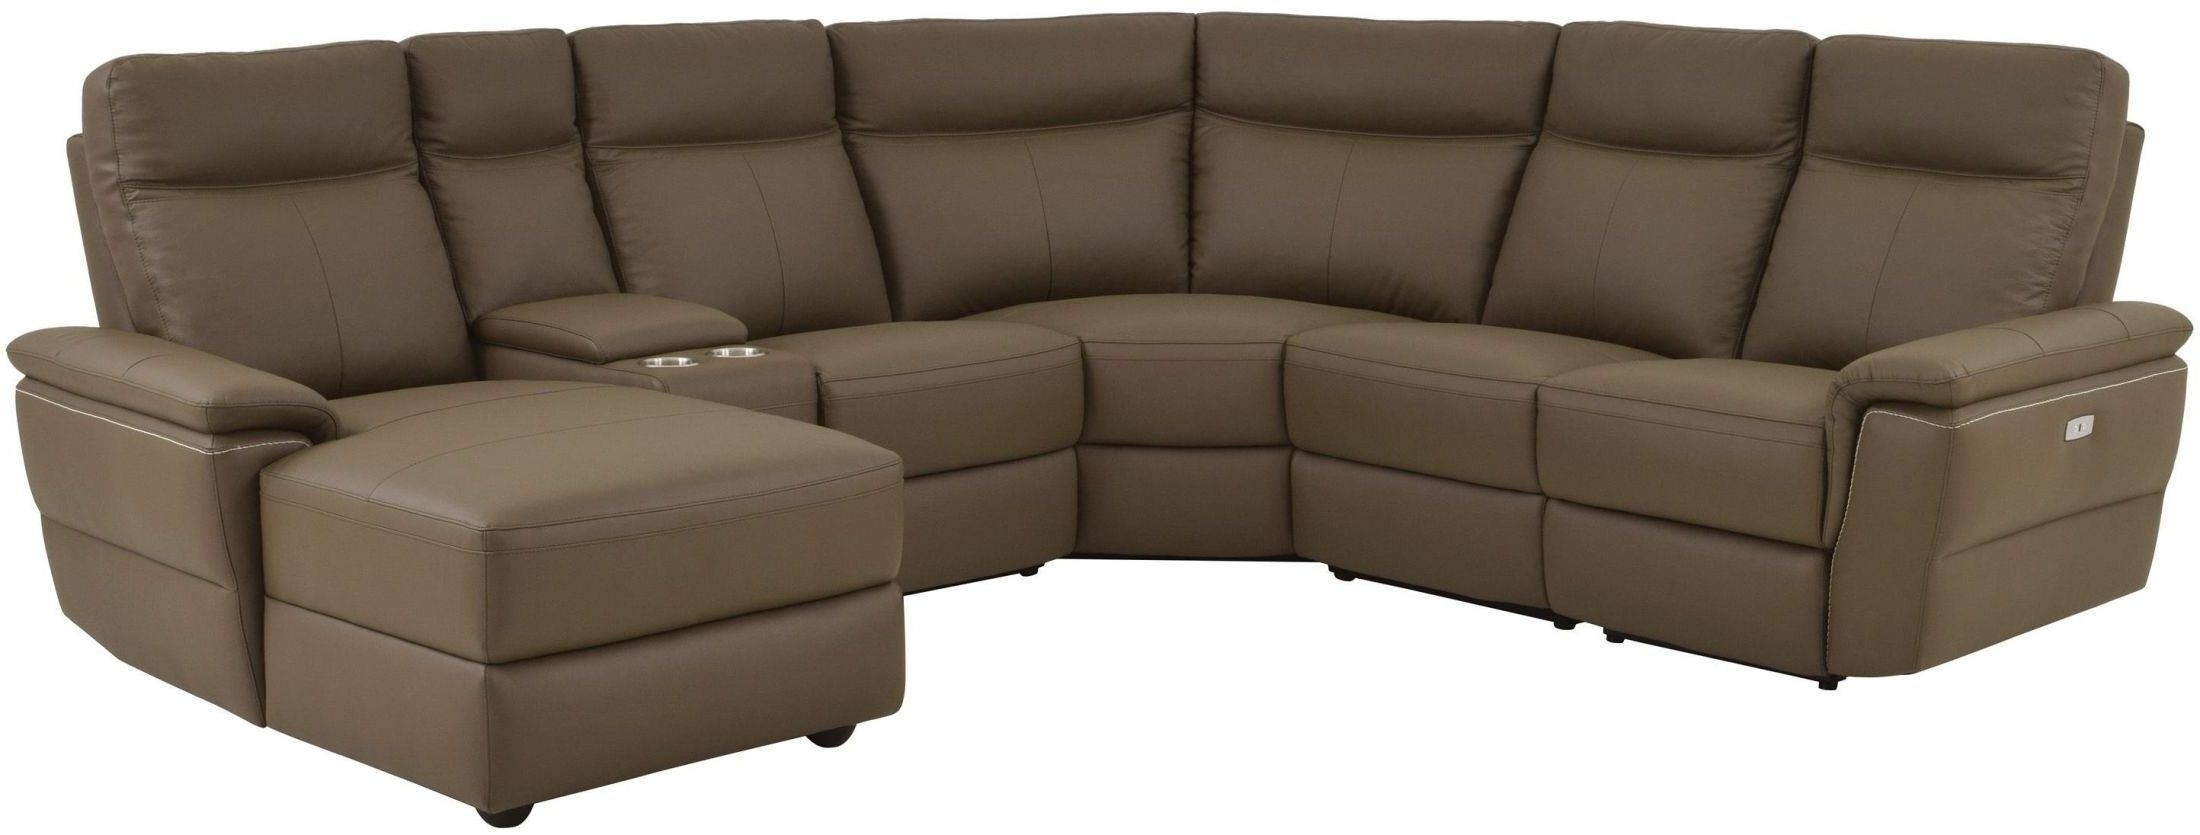 Furnitureetc | Furniture & More Olympia Brown Power Reclining intended for Avery 2 Piece Sectionals With Laf Armless Chaise (Image 11 of 30)